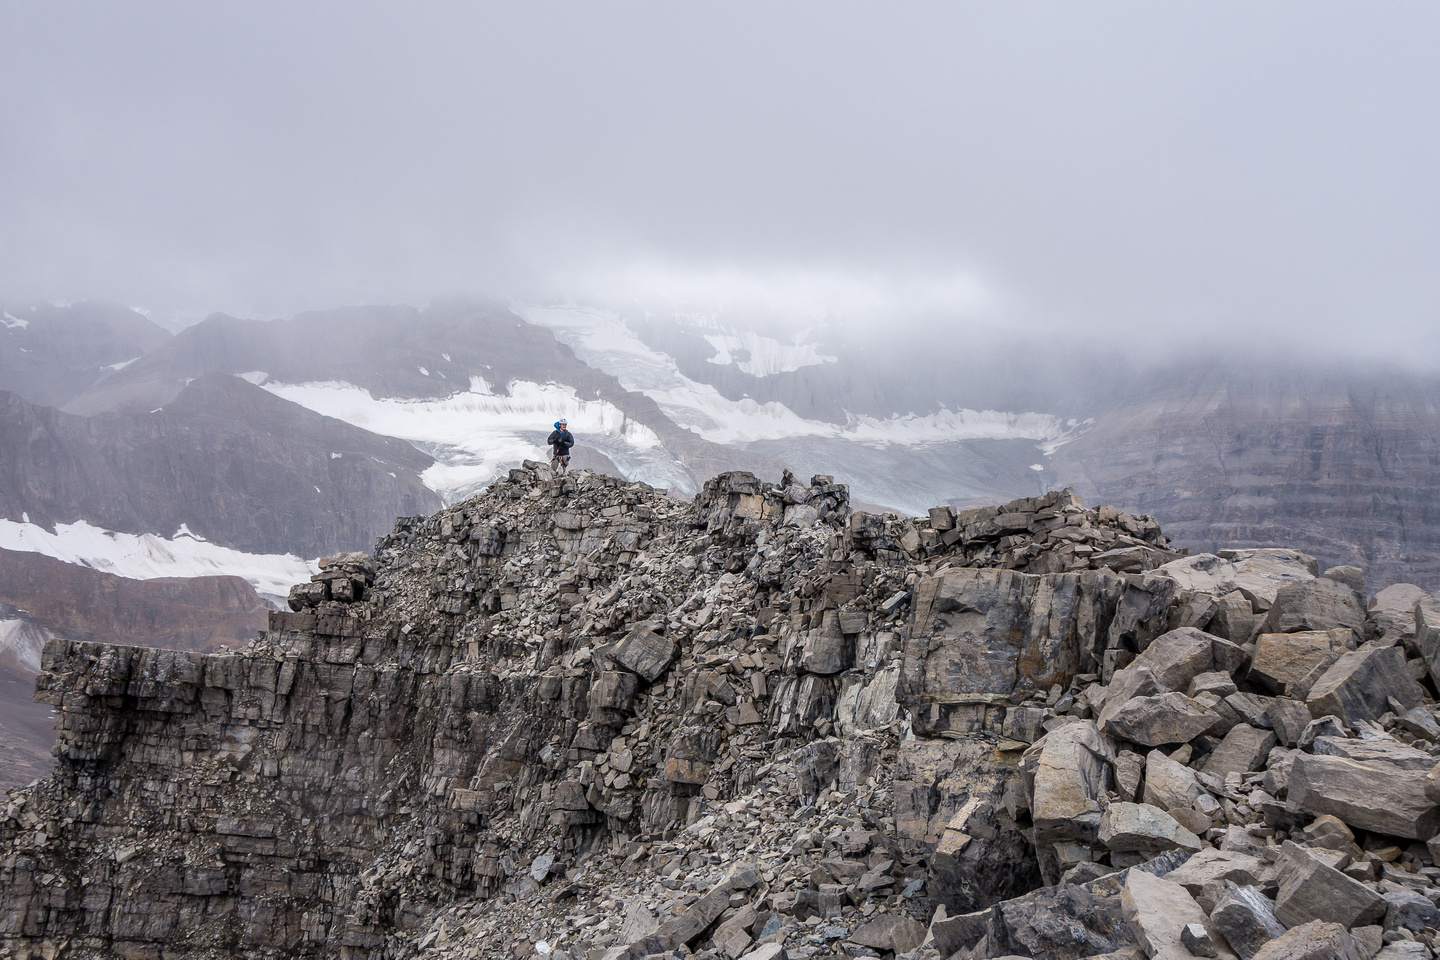 Ben takes in the wild scenery at the summit of Recondite Peak.